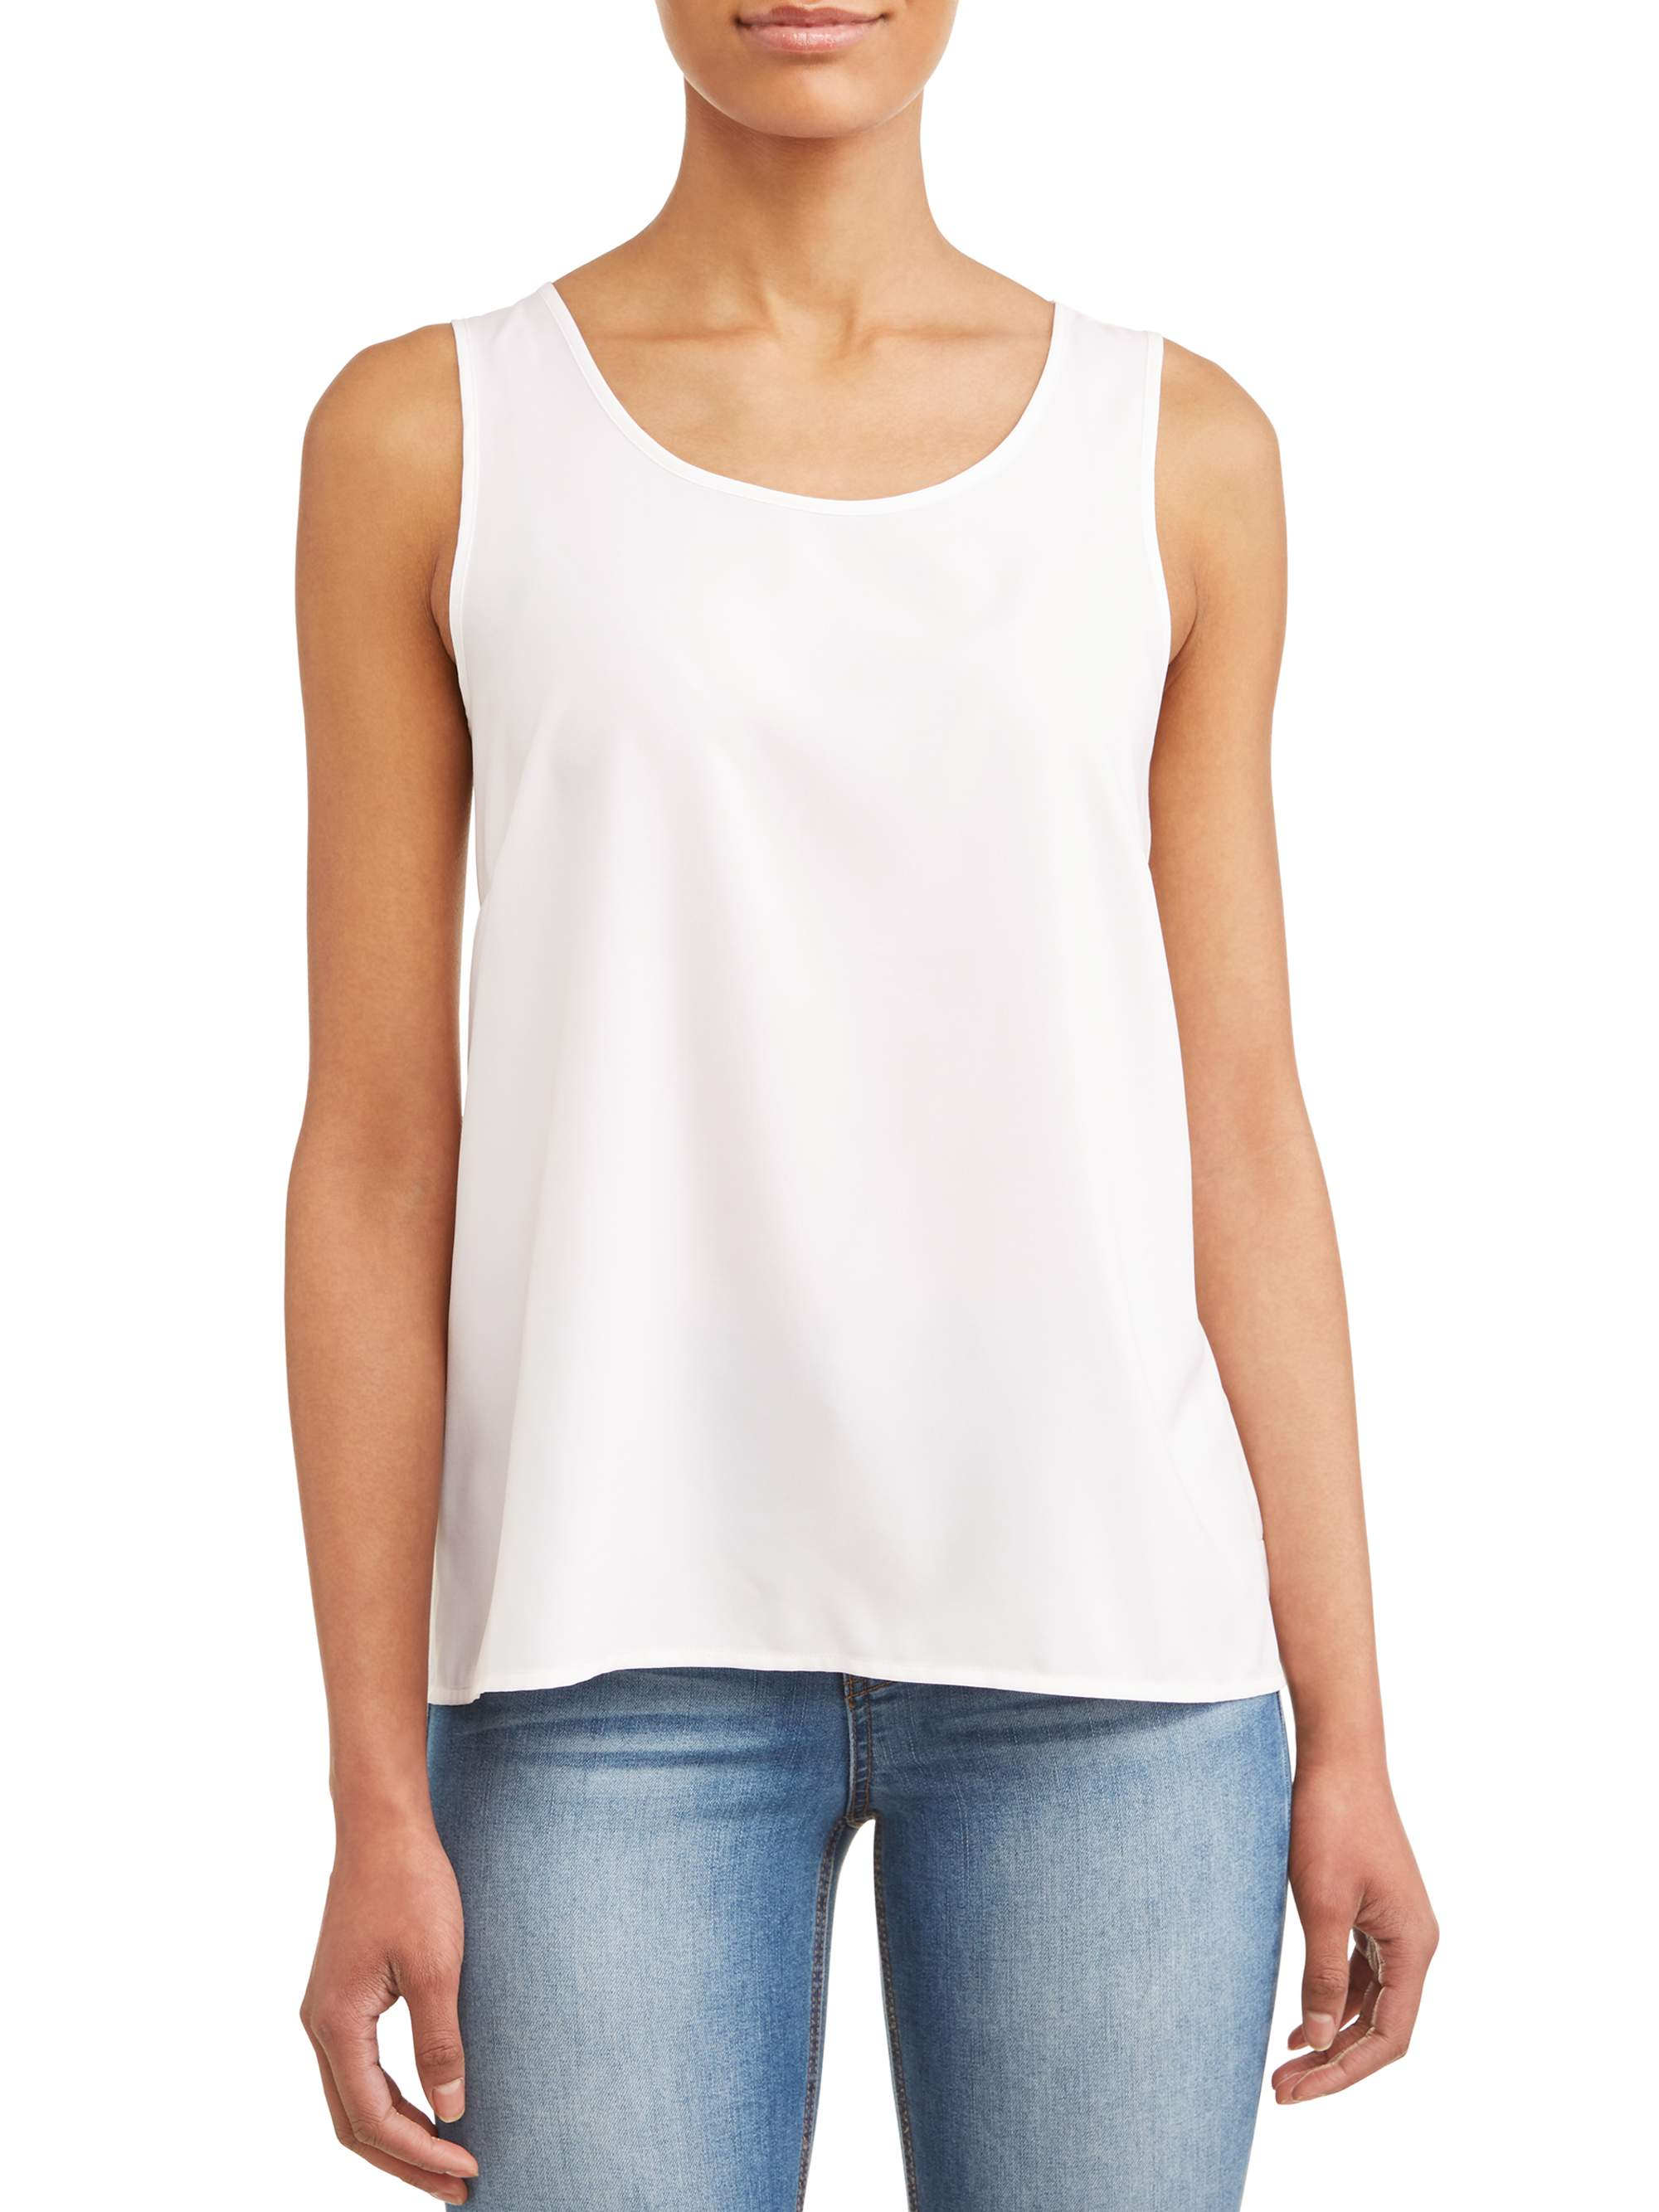 Women's Essential Woven Tank Top